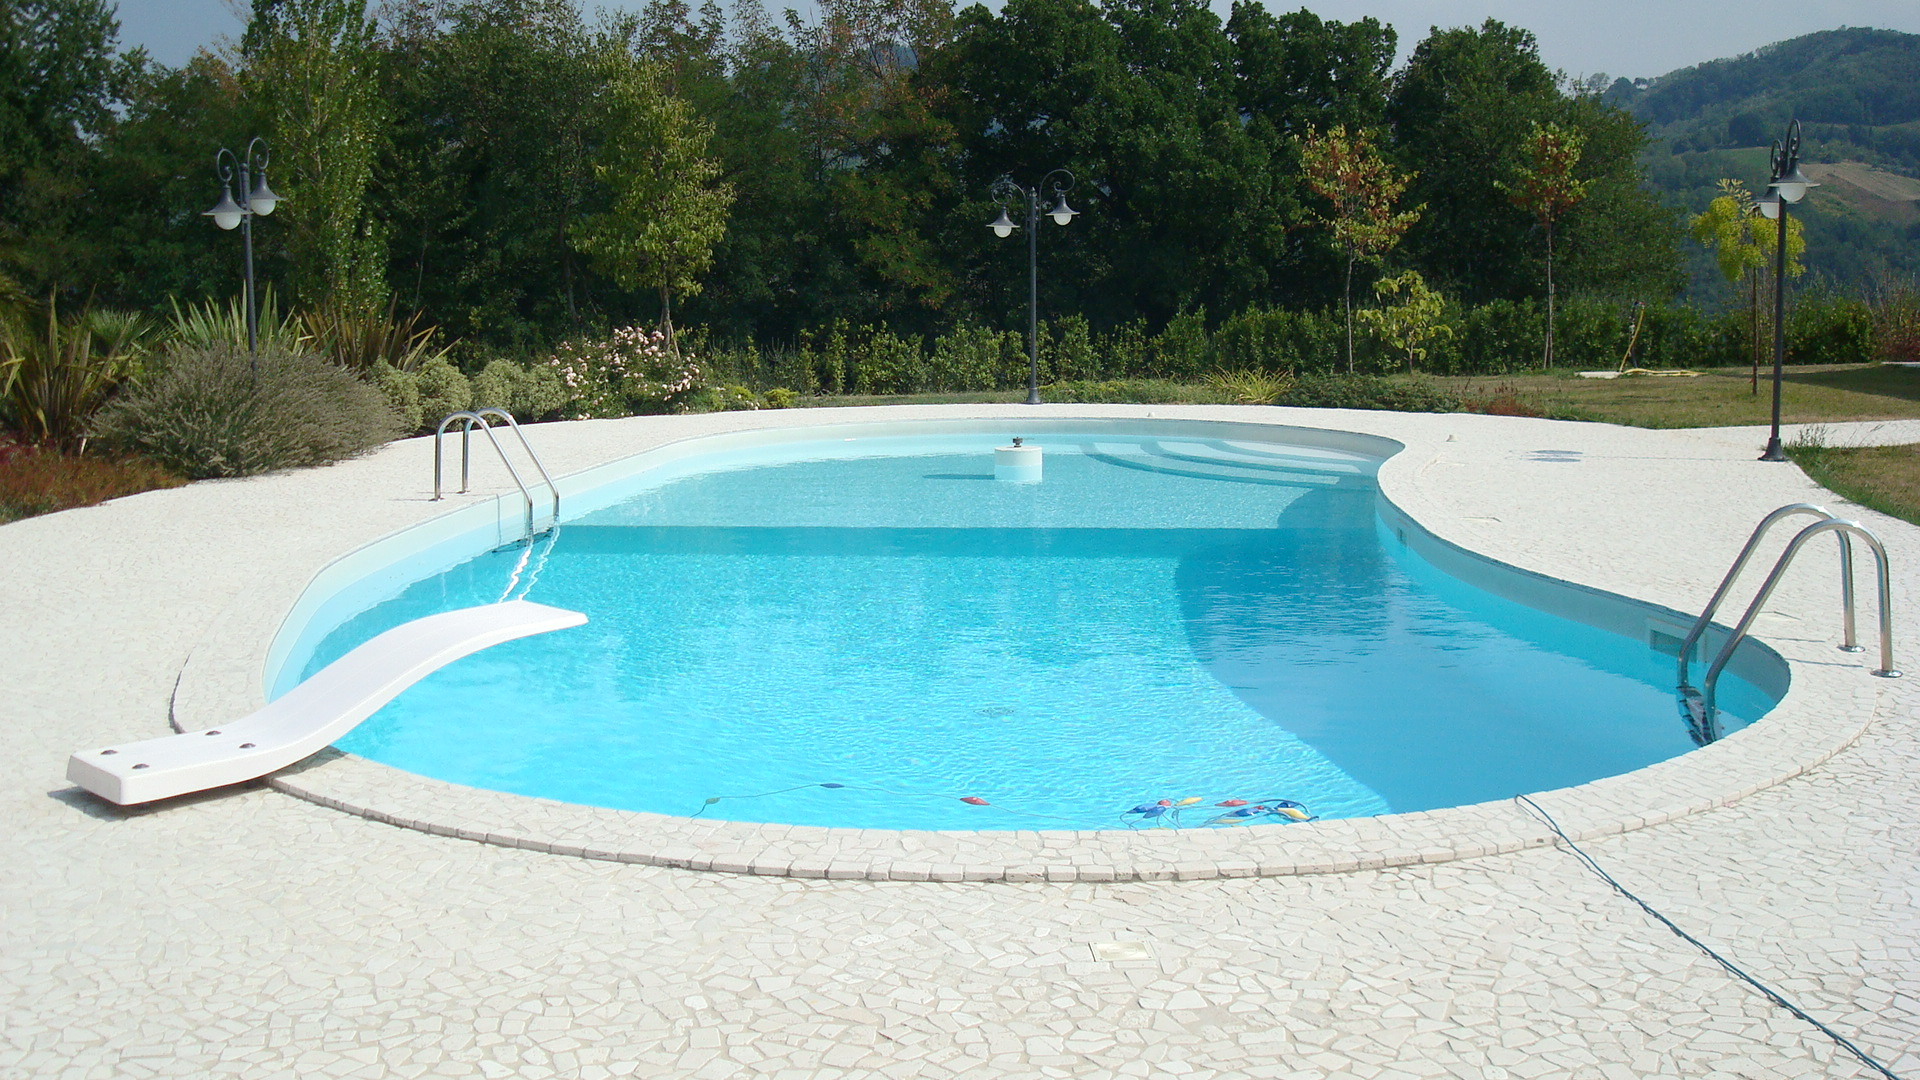 Differenza tra sfioro e skimmer infinity piscine blog for Piscine skimmer